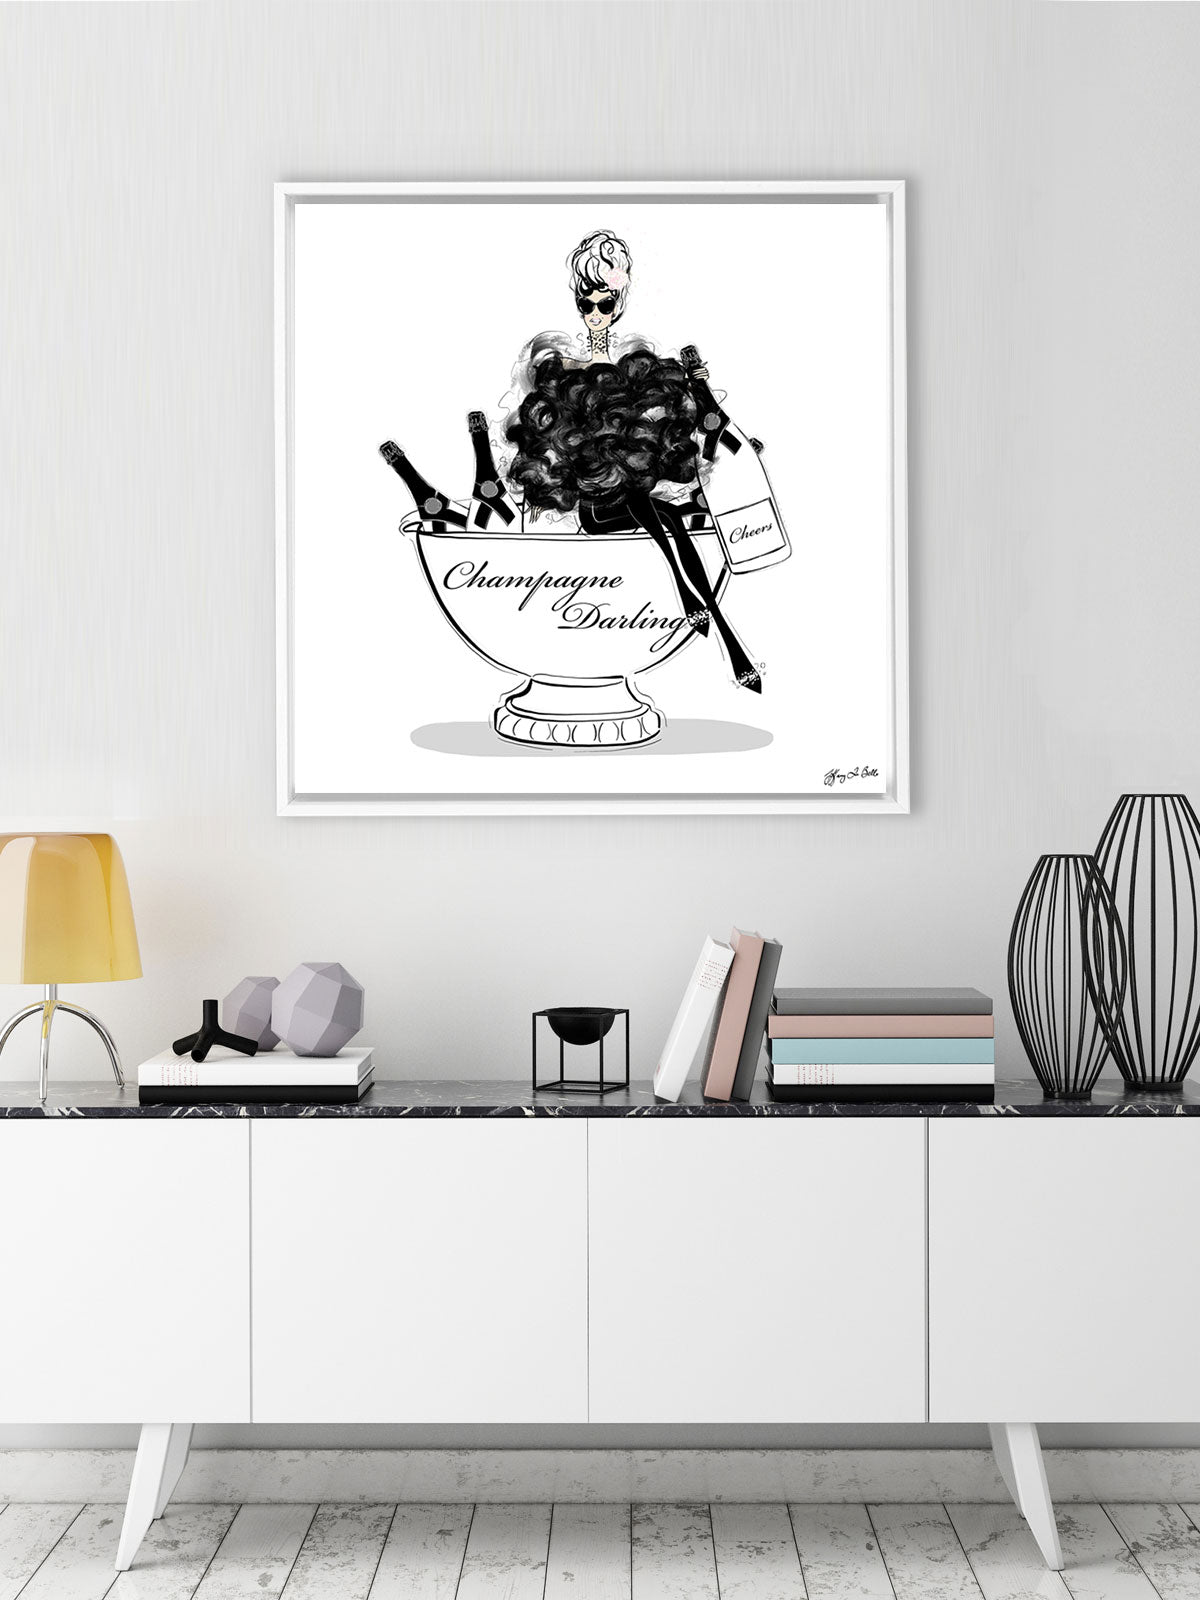 Champagne Darling - Illustration - Canvas Gallery Print - Unframed or Framed - Tiffany La Belle